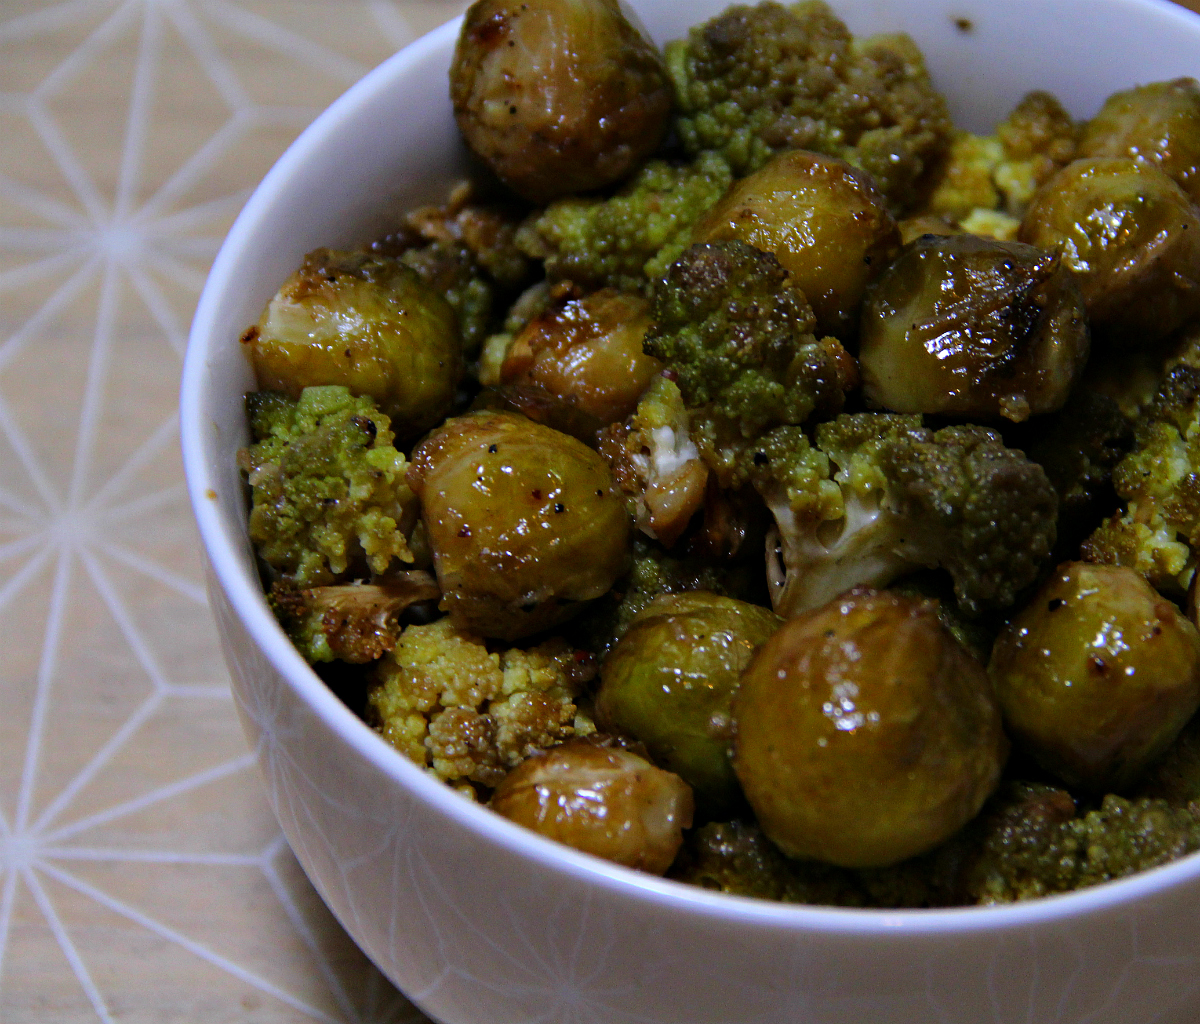 Roasted Glazed Romanesco & Brussels Sprouts - The Vegan Eskimo